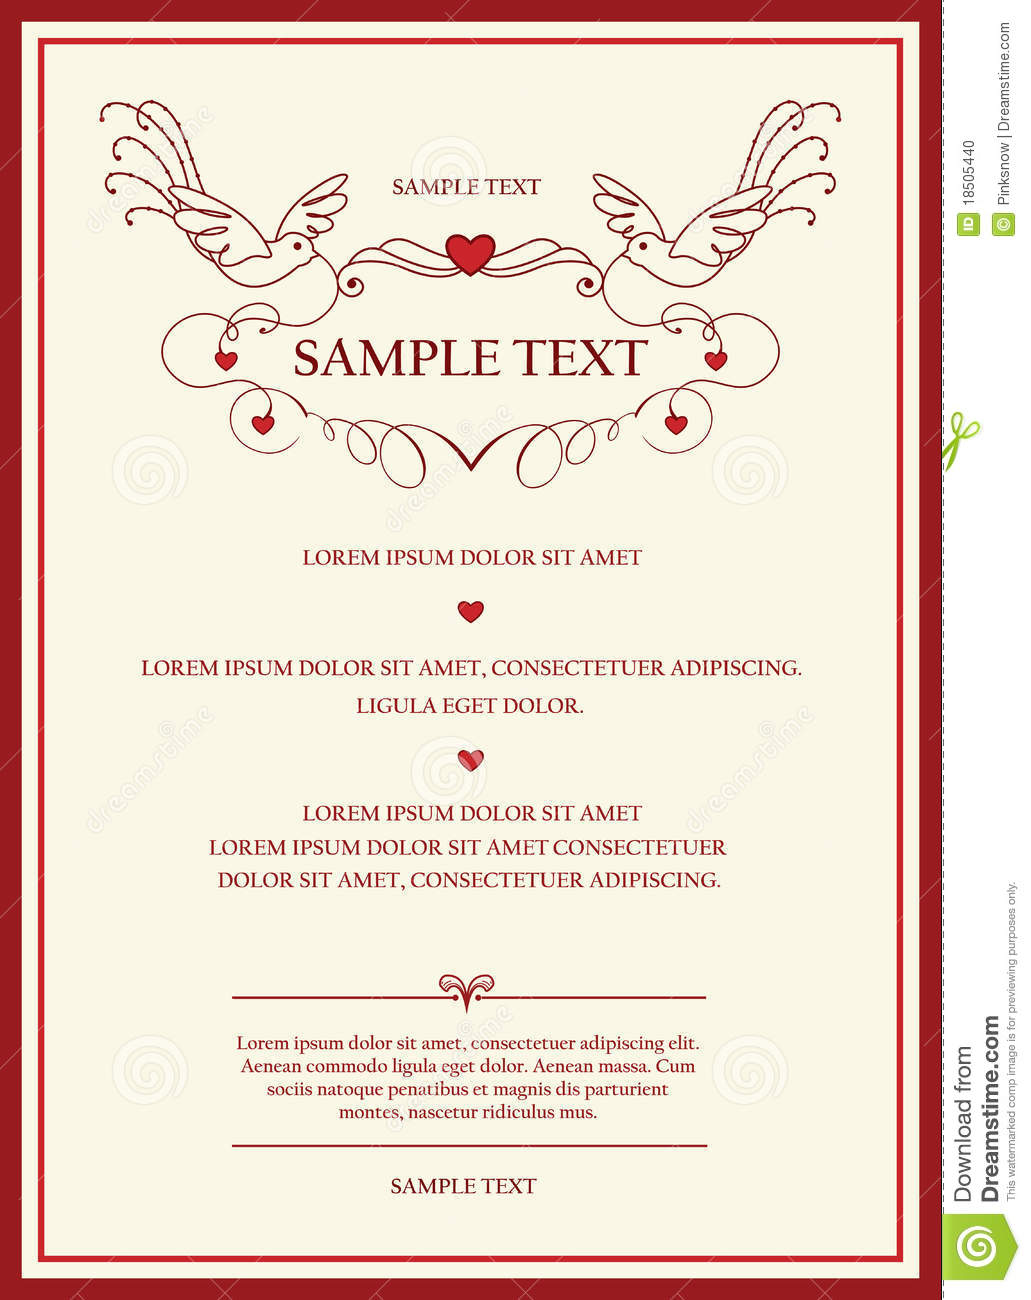 Wedding Invitation Card Stock and get inspiration to create nice invitation ideas